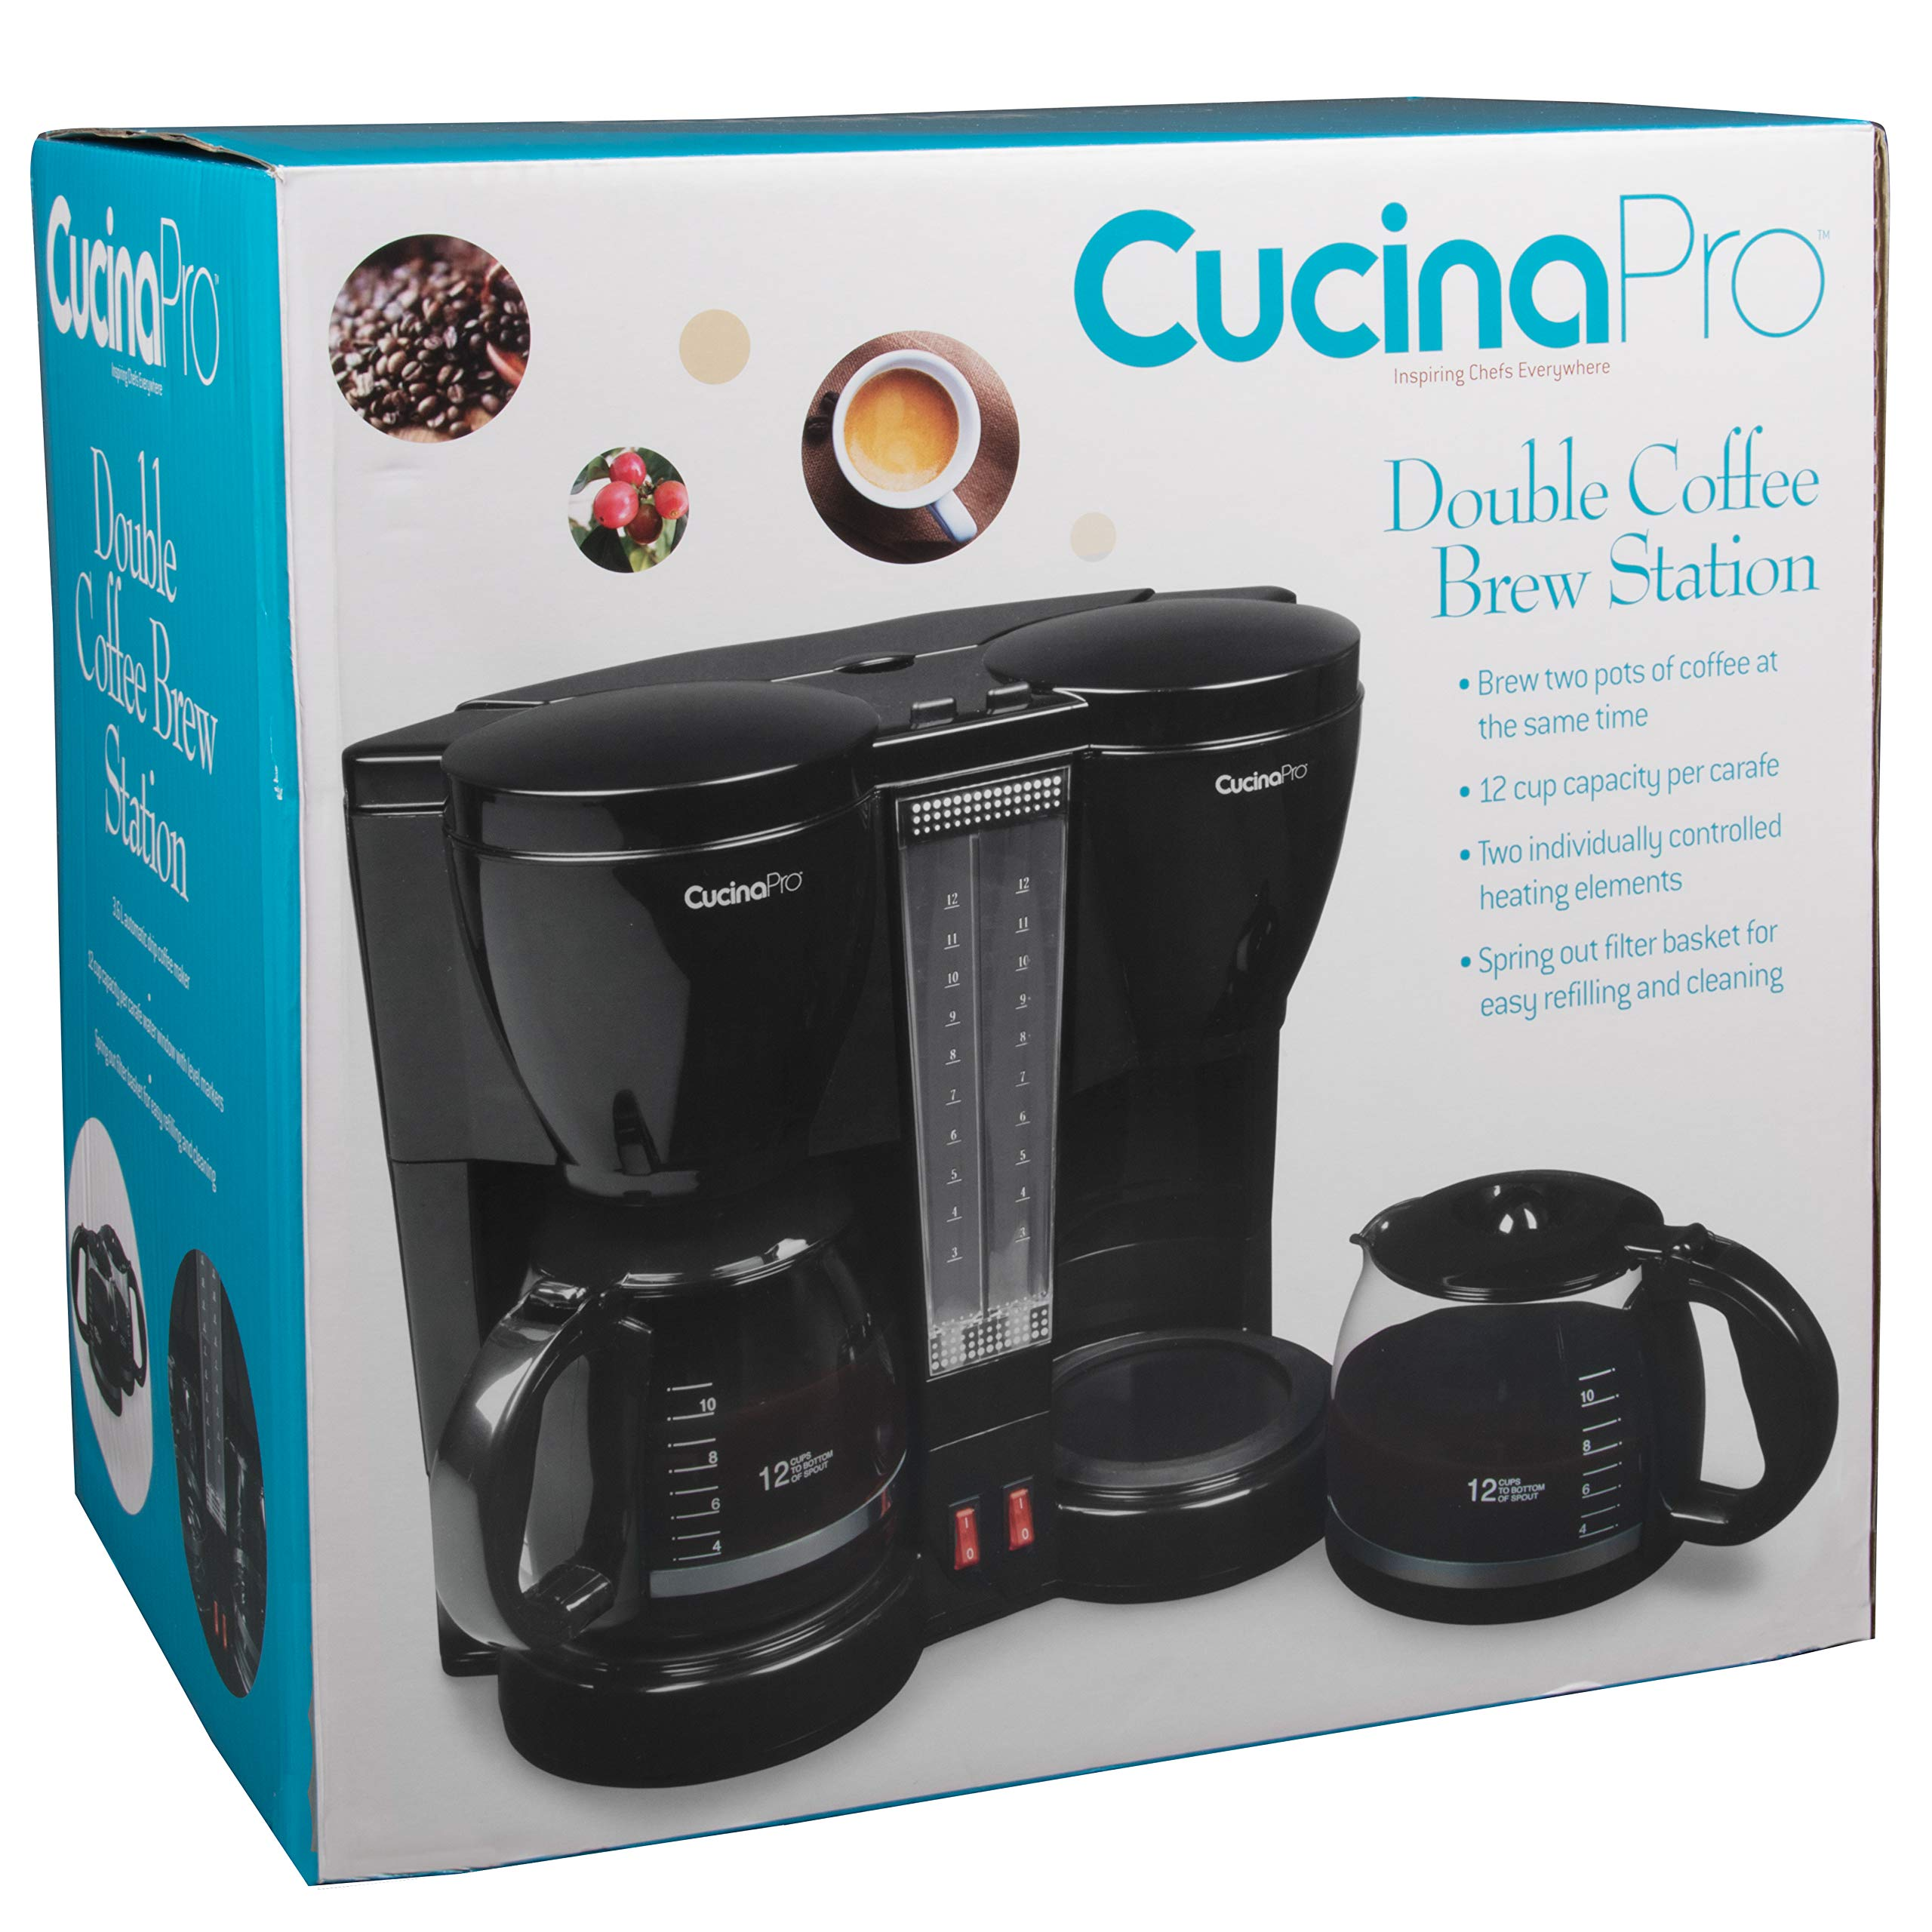 CucinaPro Double Coffee Brewer Station - Dual Coffee Maker Brews two 12-cup Pots, each with Individual Heating Elements by CucinaPro (Image #6)